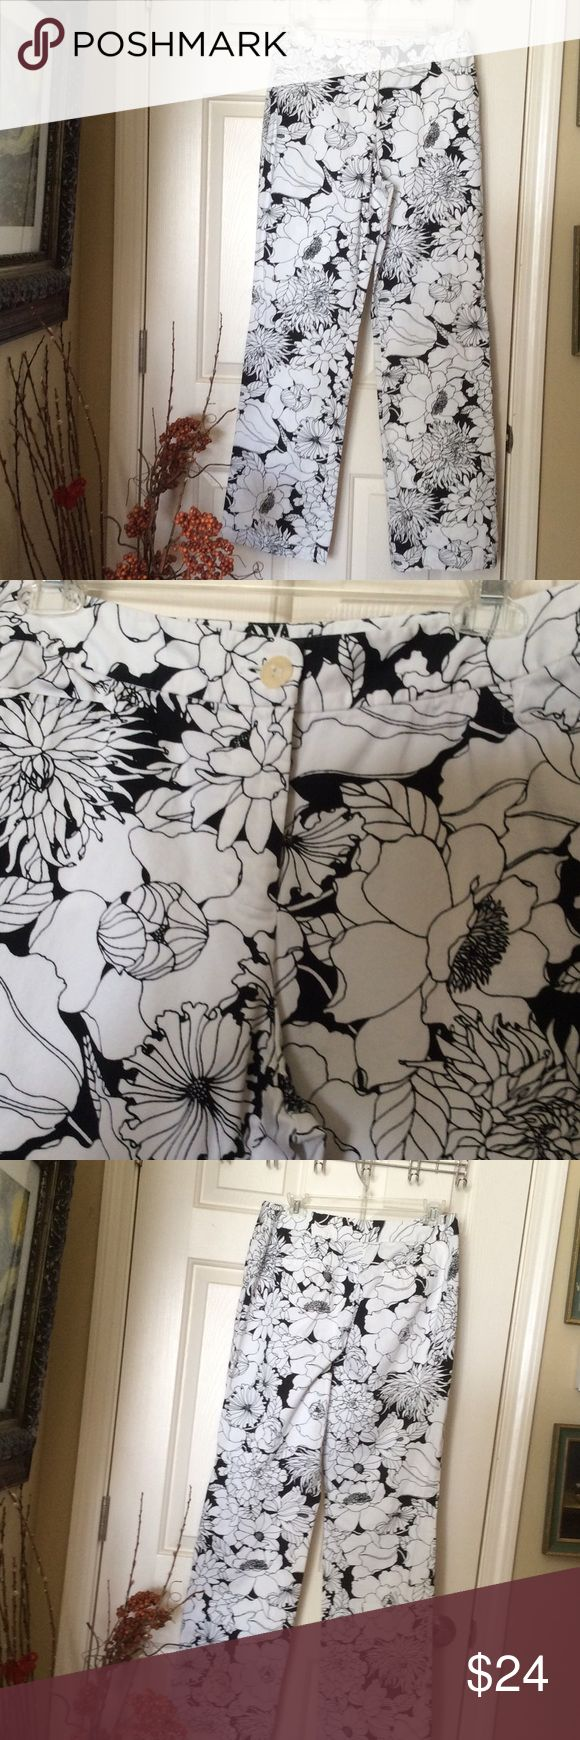 Floral Madison Studio Pants Black and white Madison Studio cotton and spandex pants. They feel and fit like a glove. In great condition. Slightly bell bottom. madison studio Pants